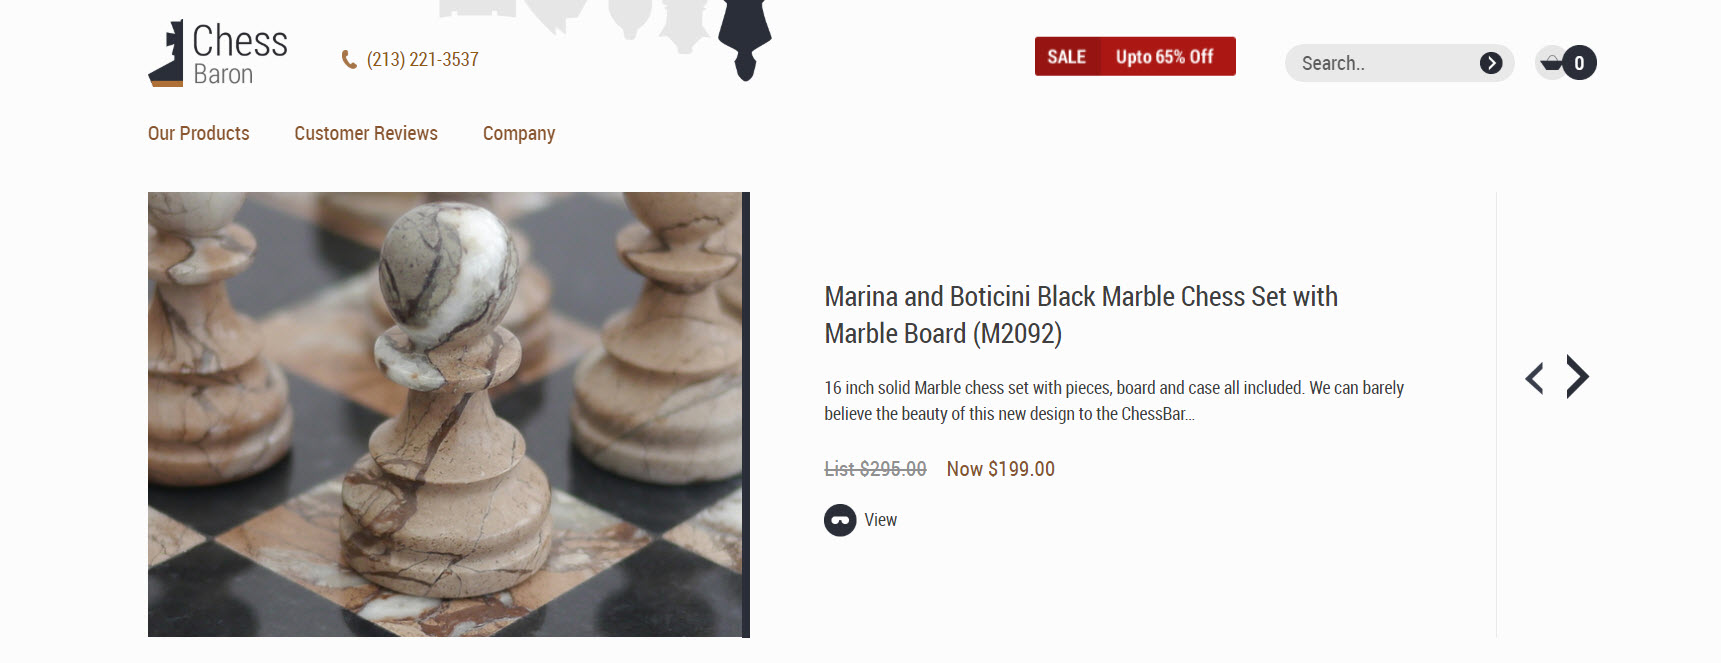 Top 10 Best Chess Sets and Boards 2019 | World Chess Pieces